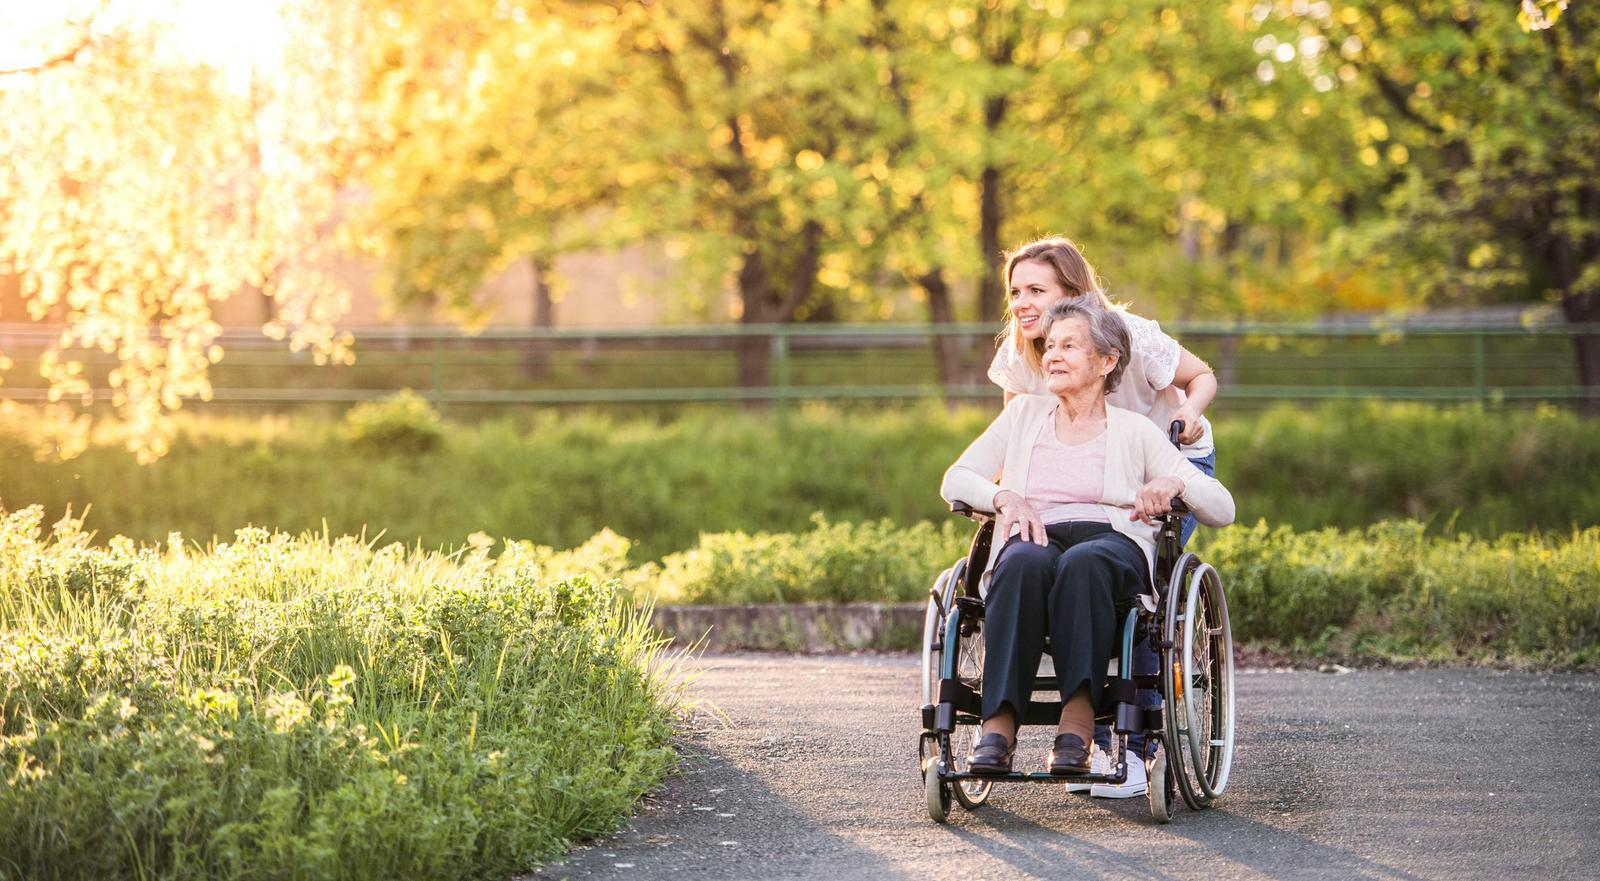 Woman pushing an elderly woman in a wheelchair